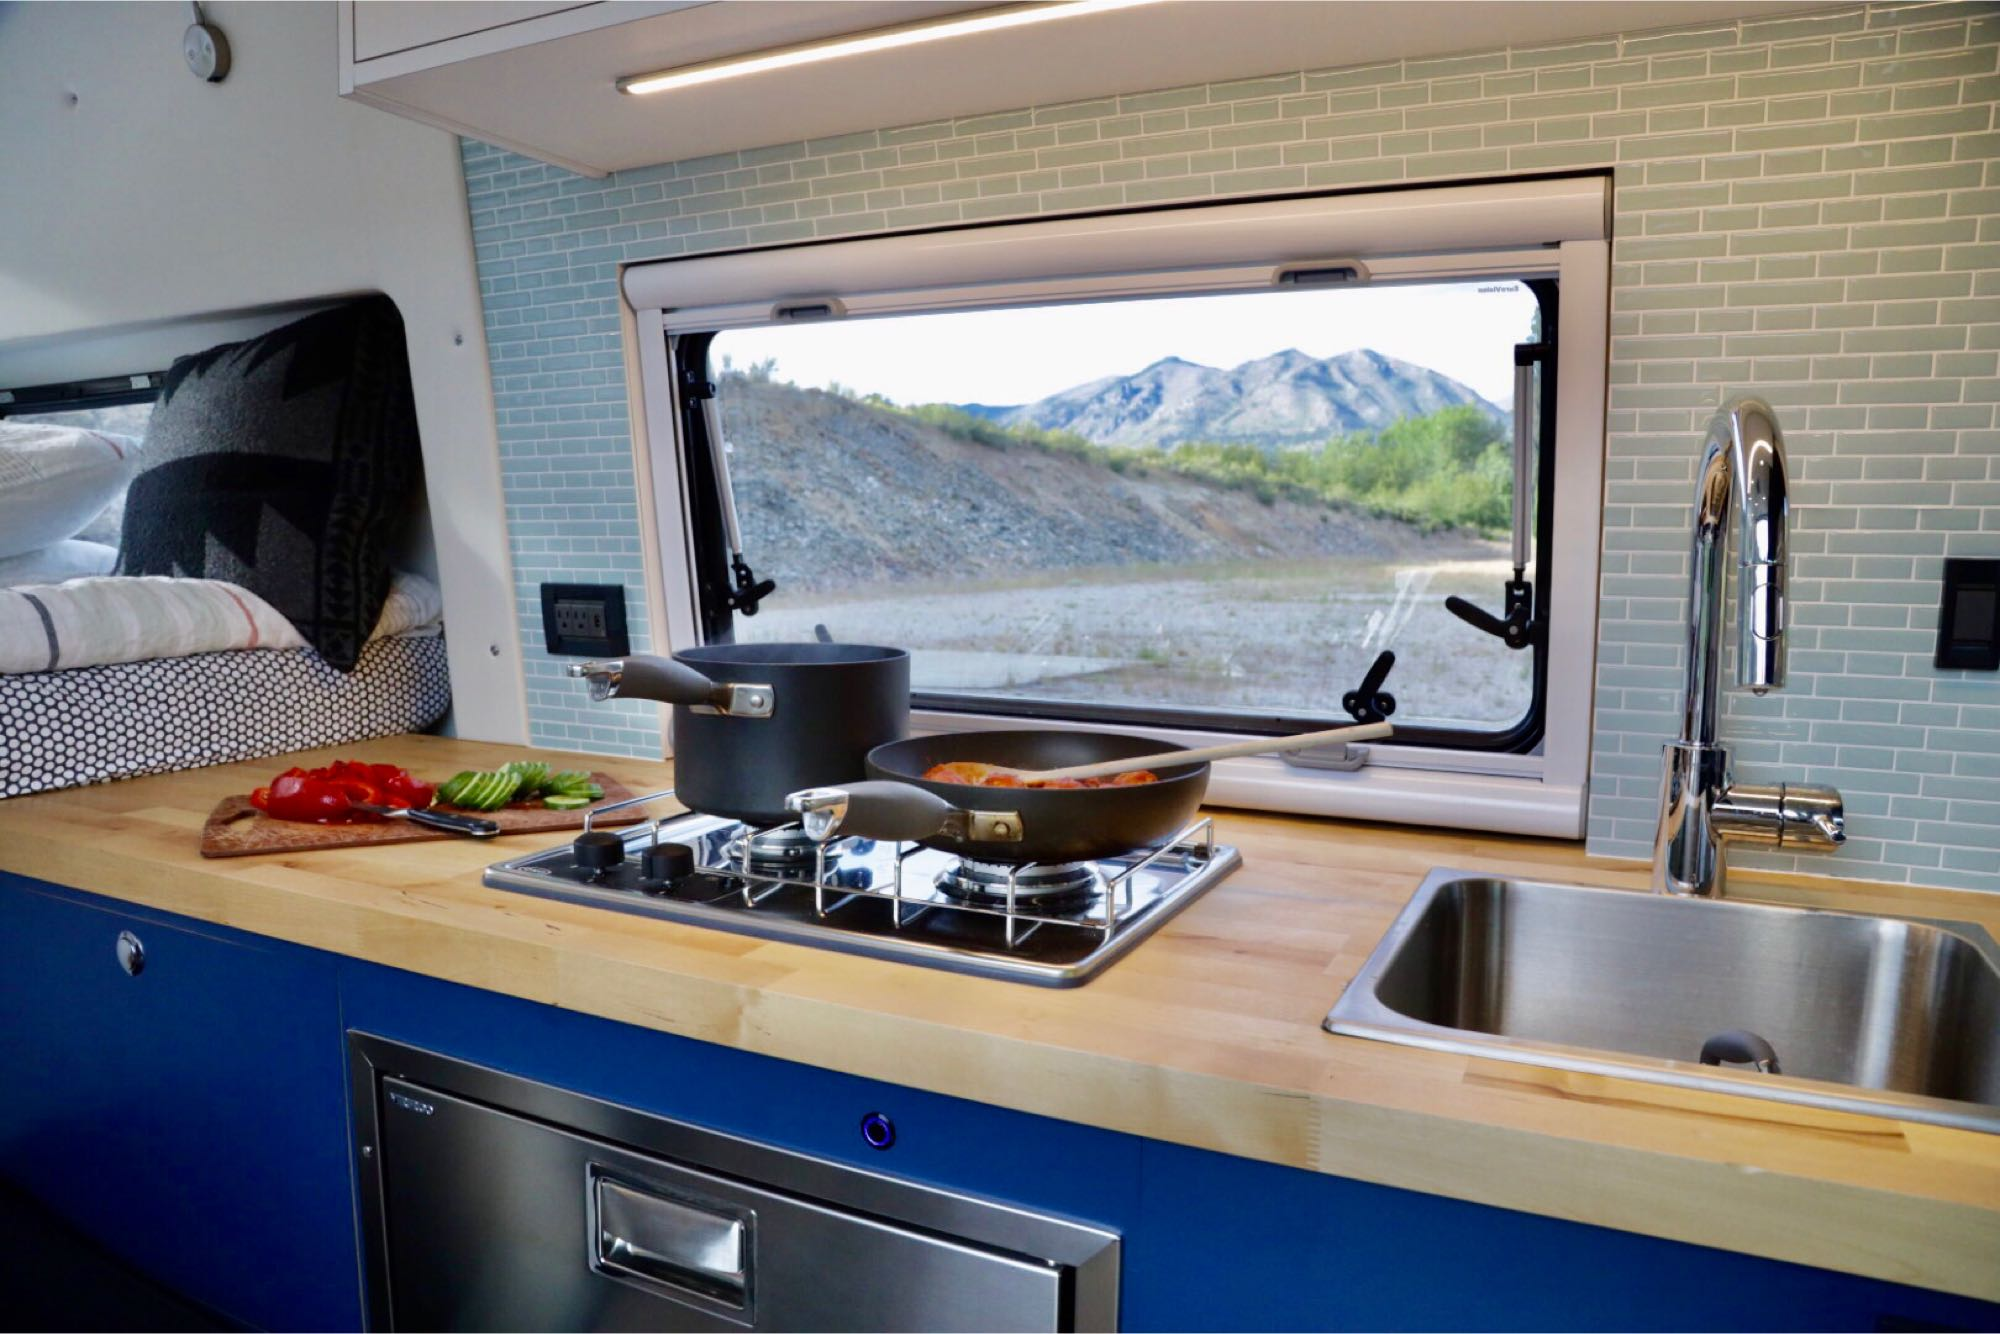 2-burner propane cooktop and a deep sink with faucet. Mercedes-Benz Sprinter 2019